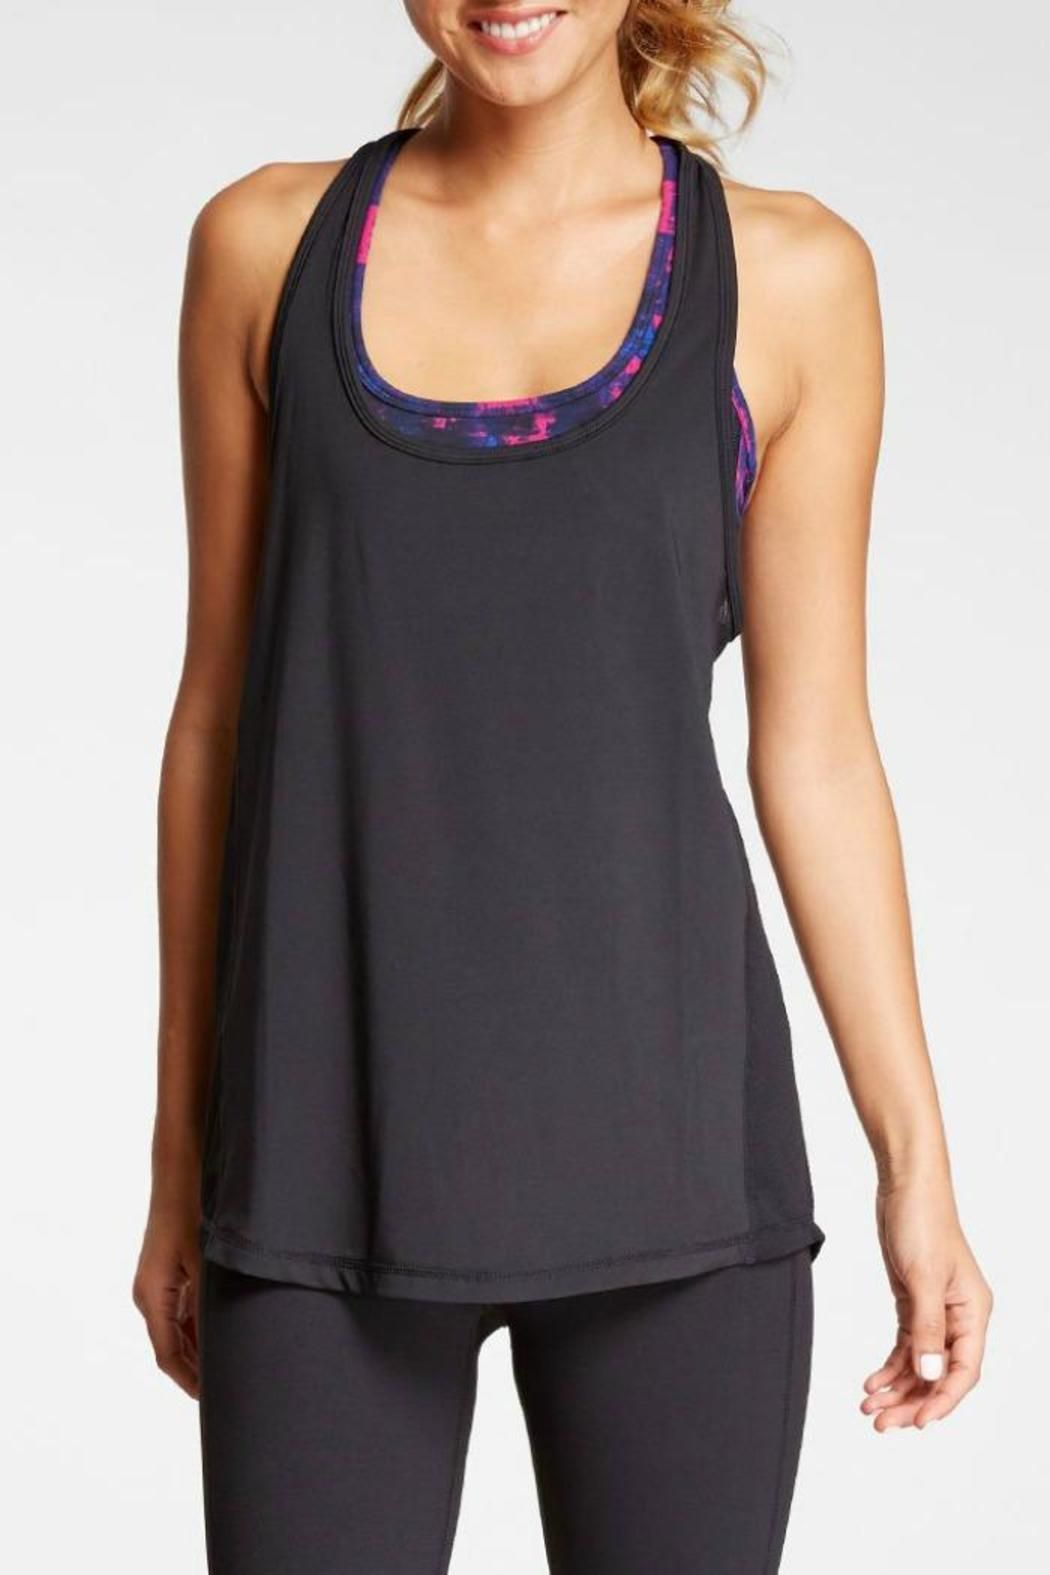 Lightweight and supportive bra-tank combo. Relaxed fit tank made of moisture-wicking performance jersey and performance mesh side panels for added breathability. Racerback sports bra provides built-in support.   Kari Workout Tank by Threads 4 Thought. Clothing - Activewear New Jersey